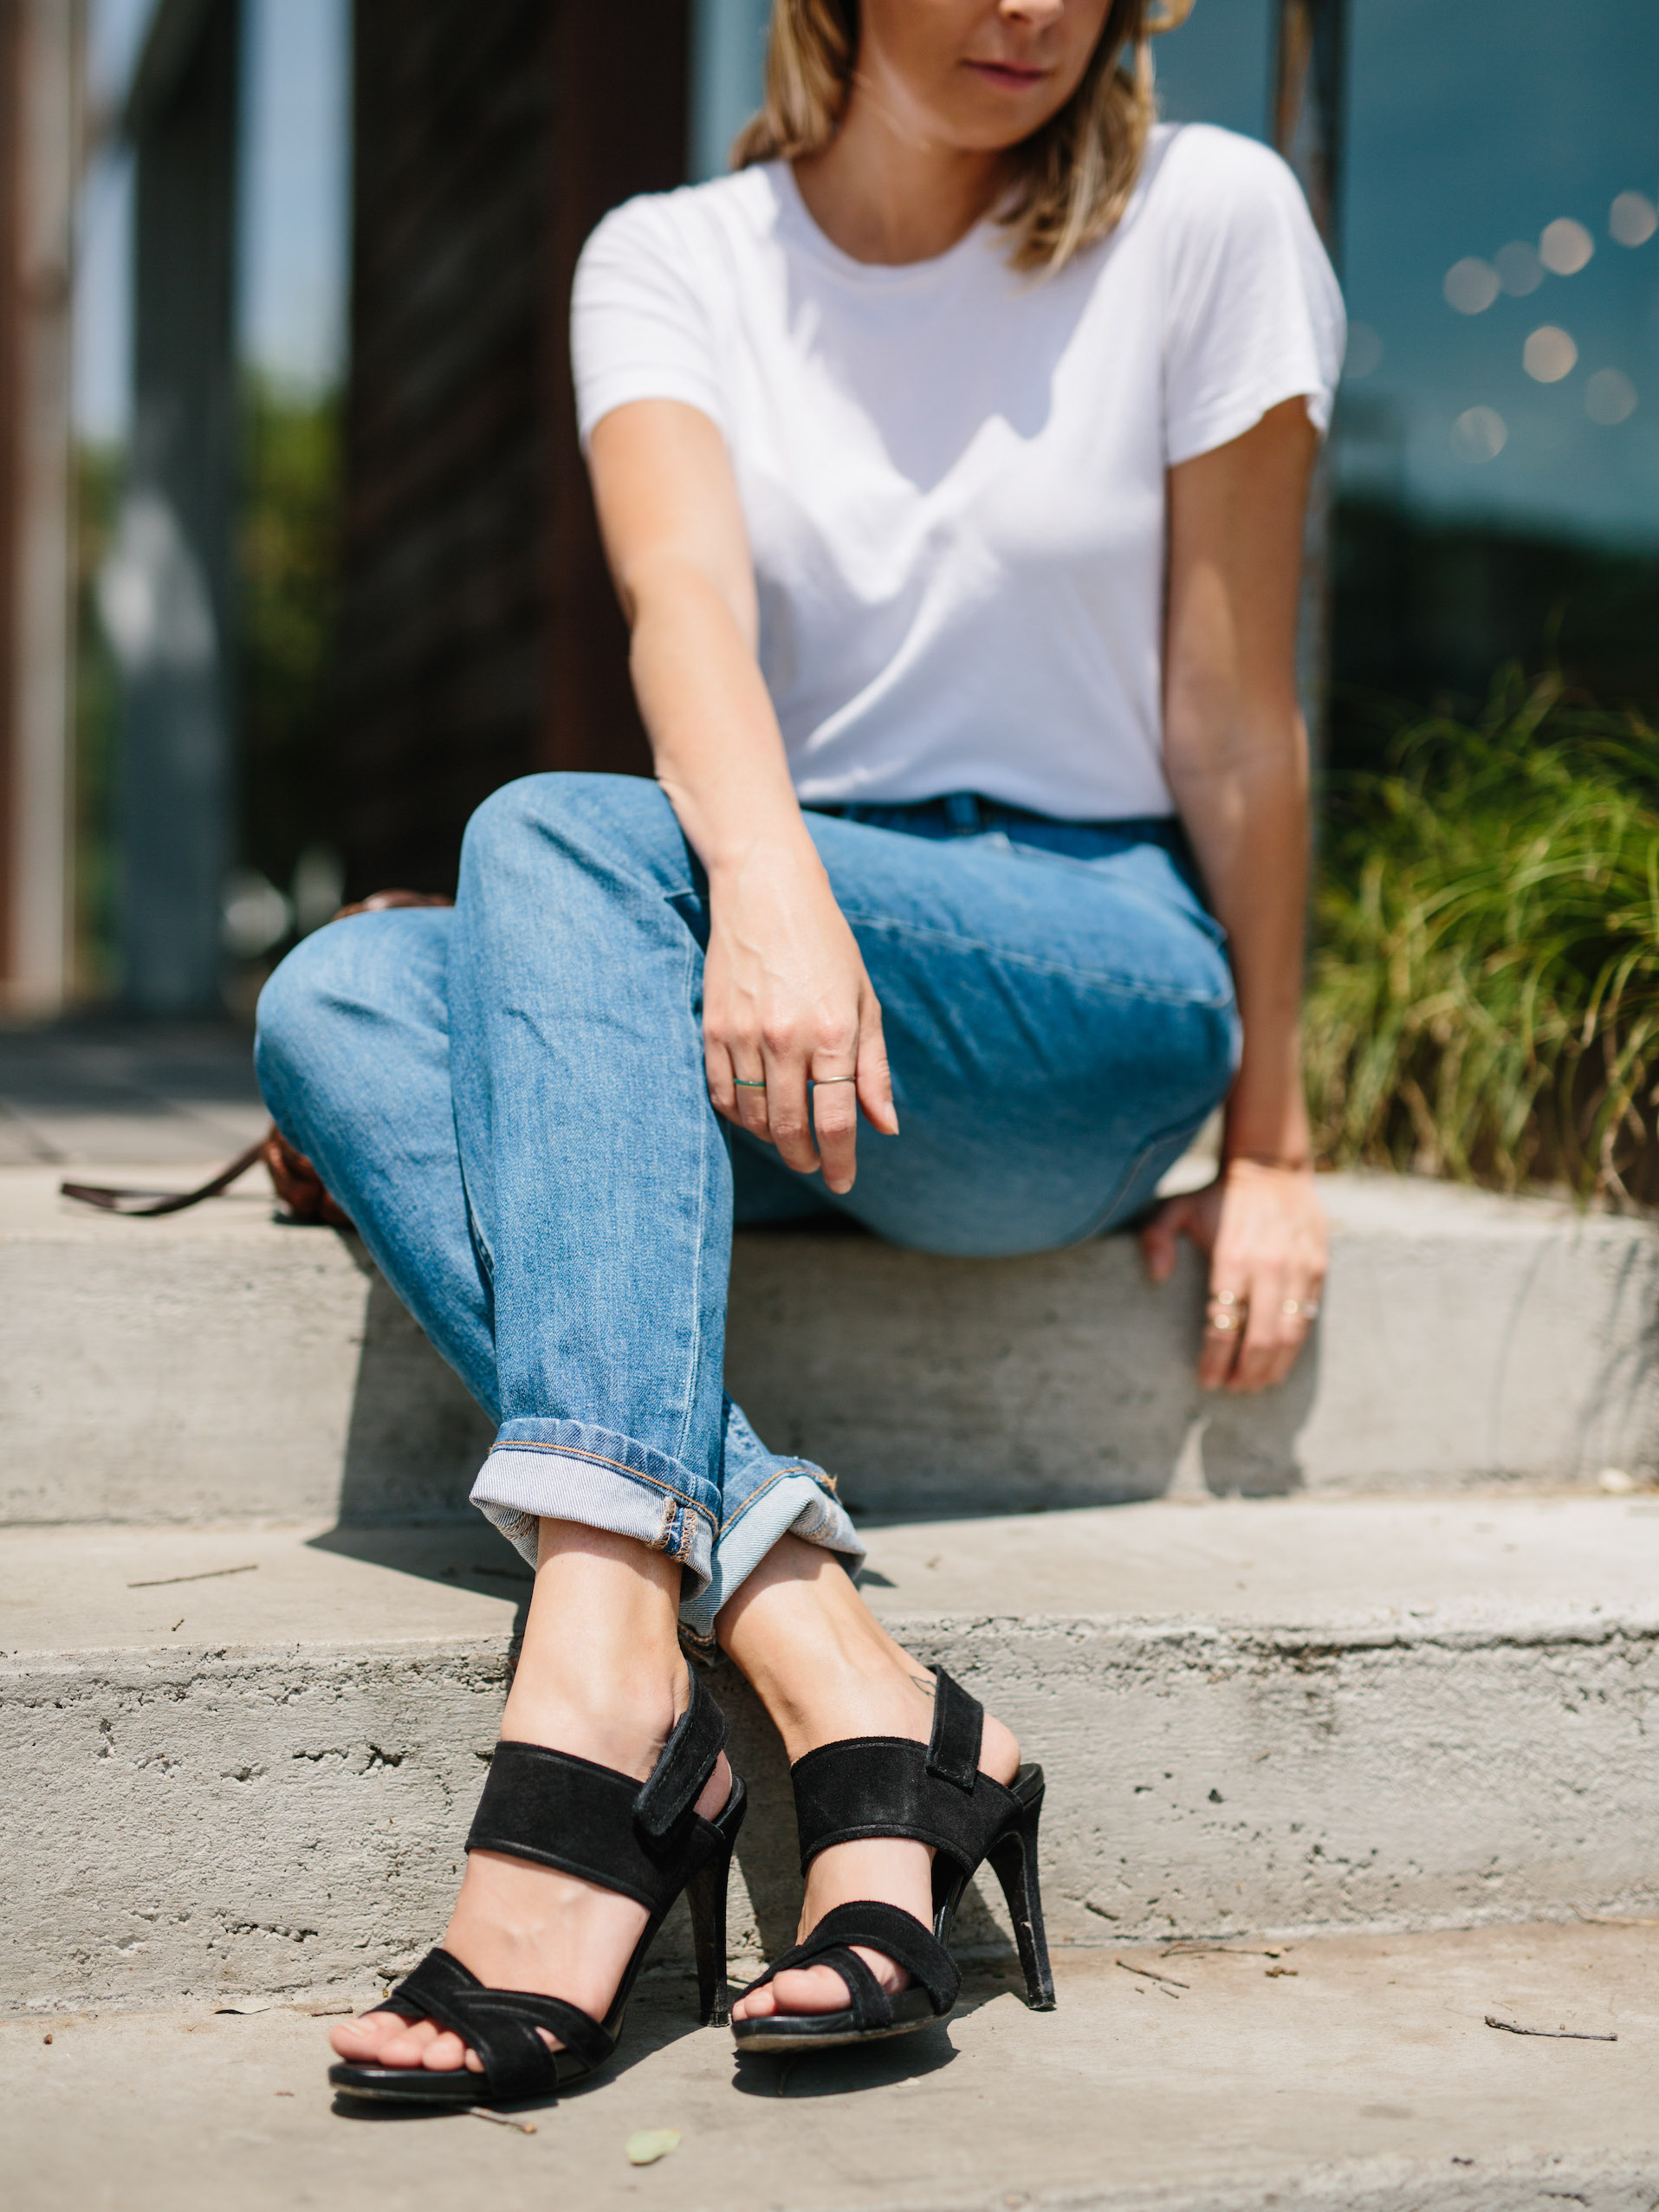 Minimalist outfit with black high heels // A Week Of Summertime Minimalist Outfits With Ava Darnell, Founder Of Slumlove Sweater Company on The Good Trade